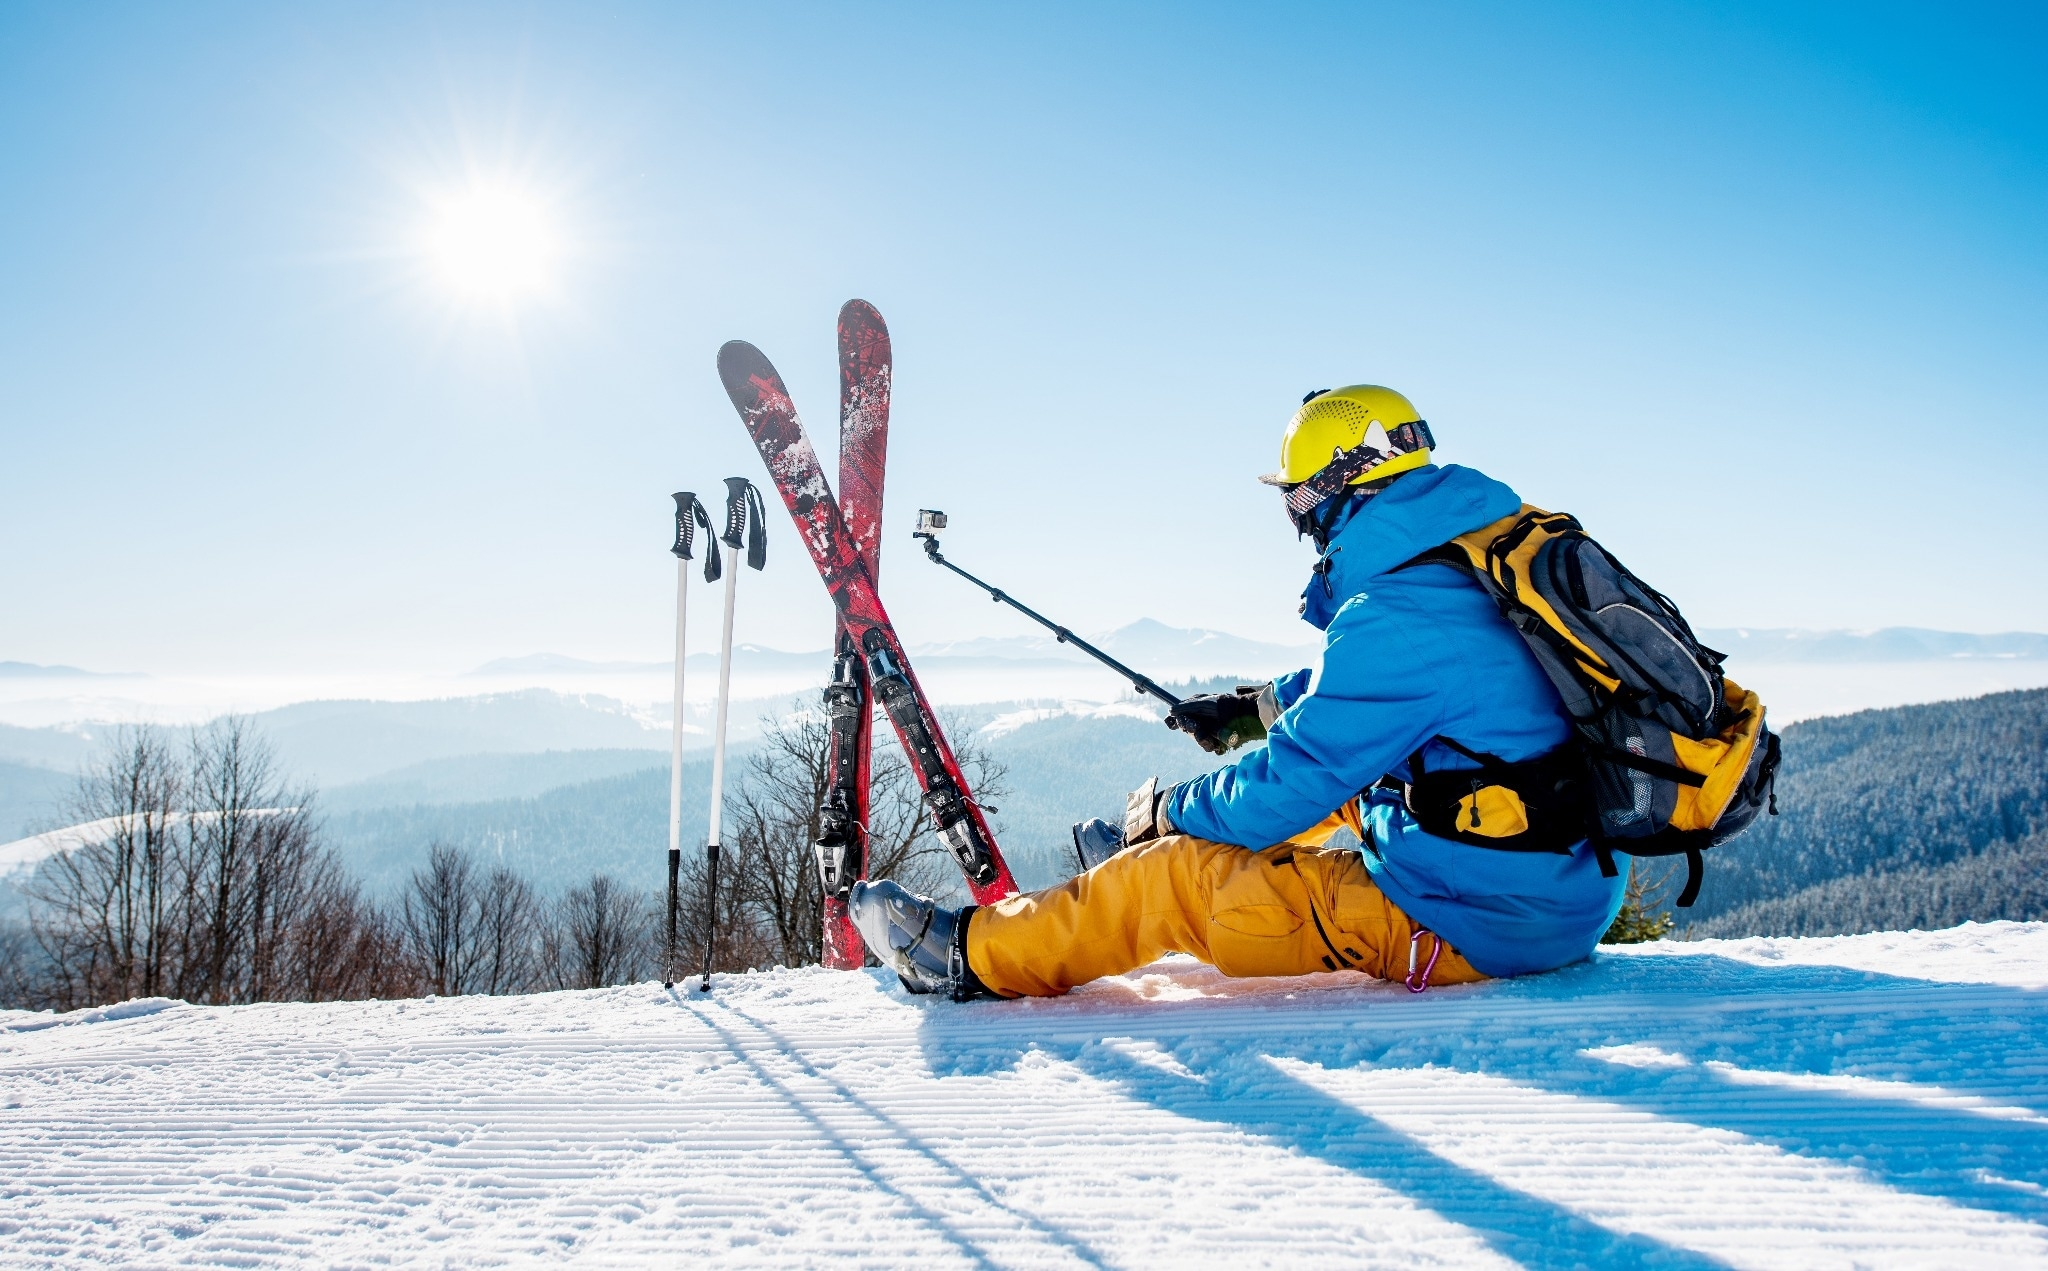 Top 9 Wearables and Smart Gadgets for Skiers and Snowboarders